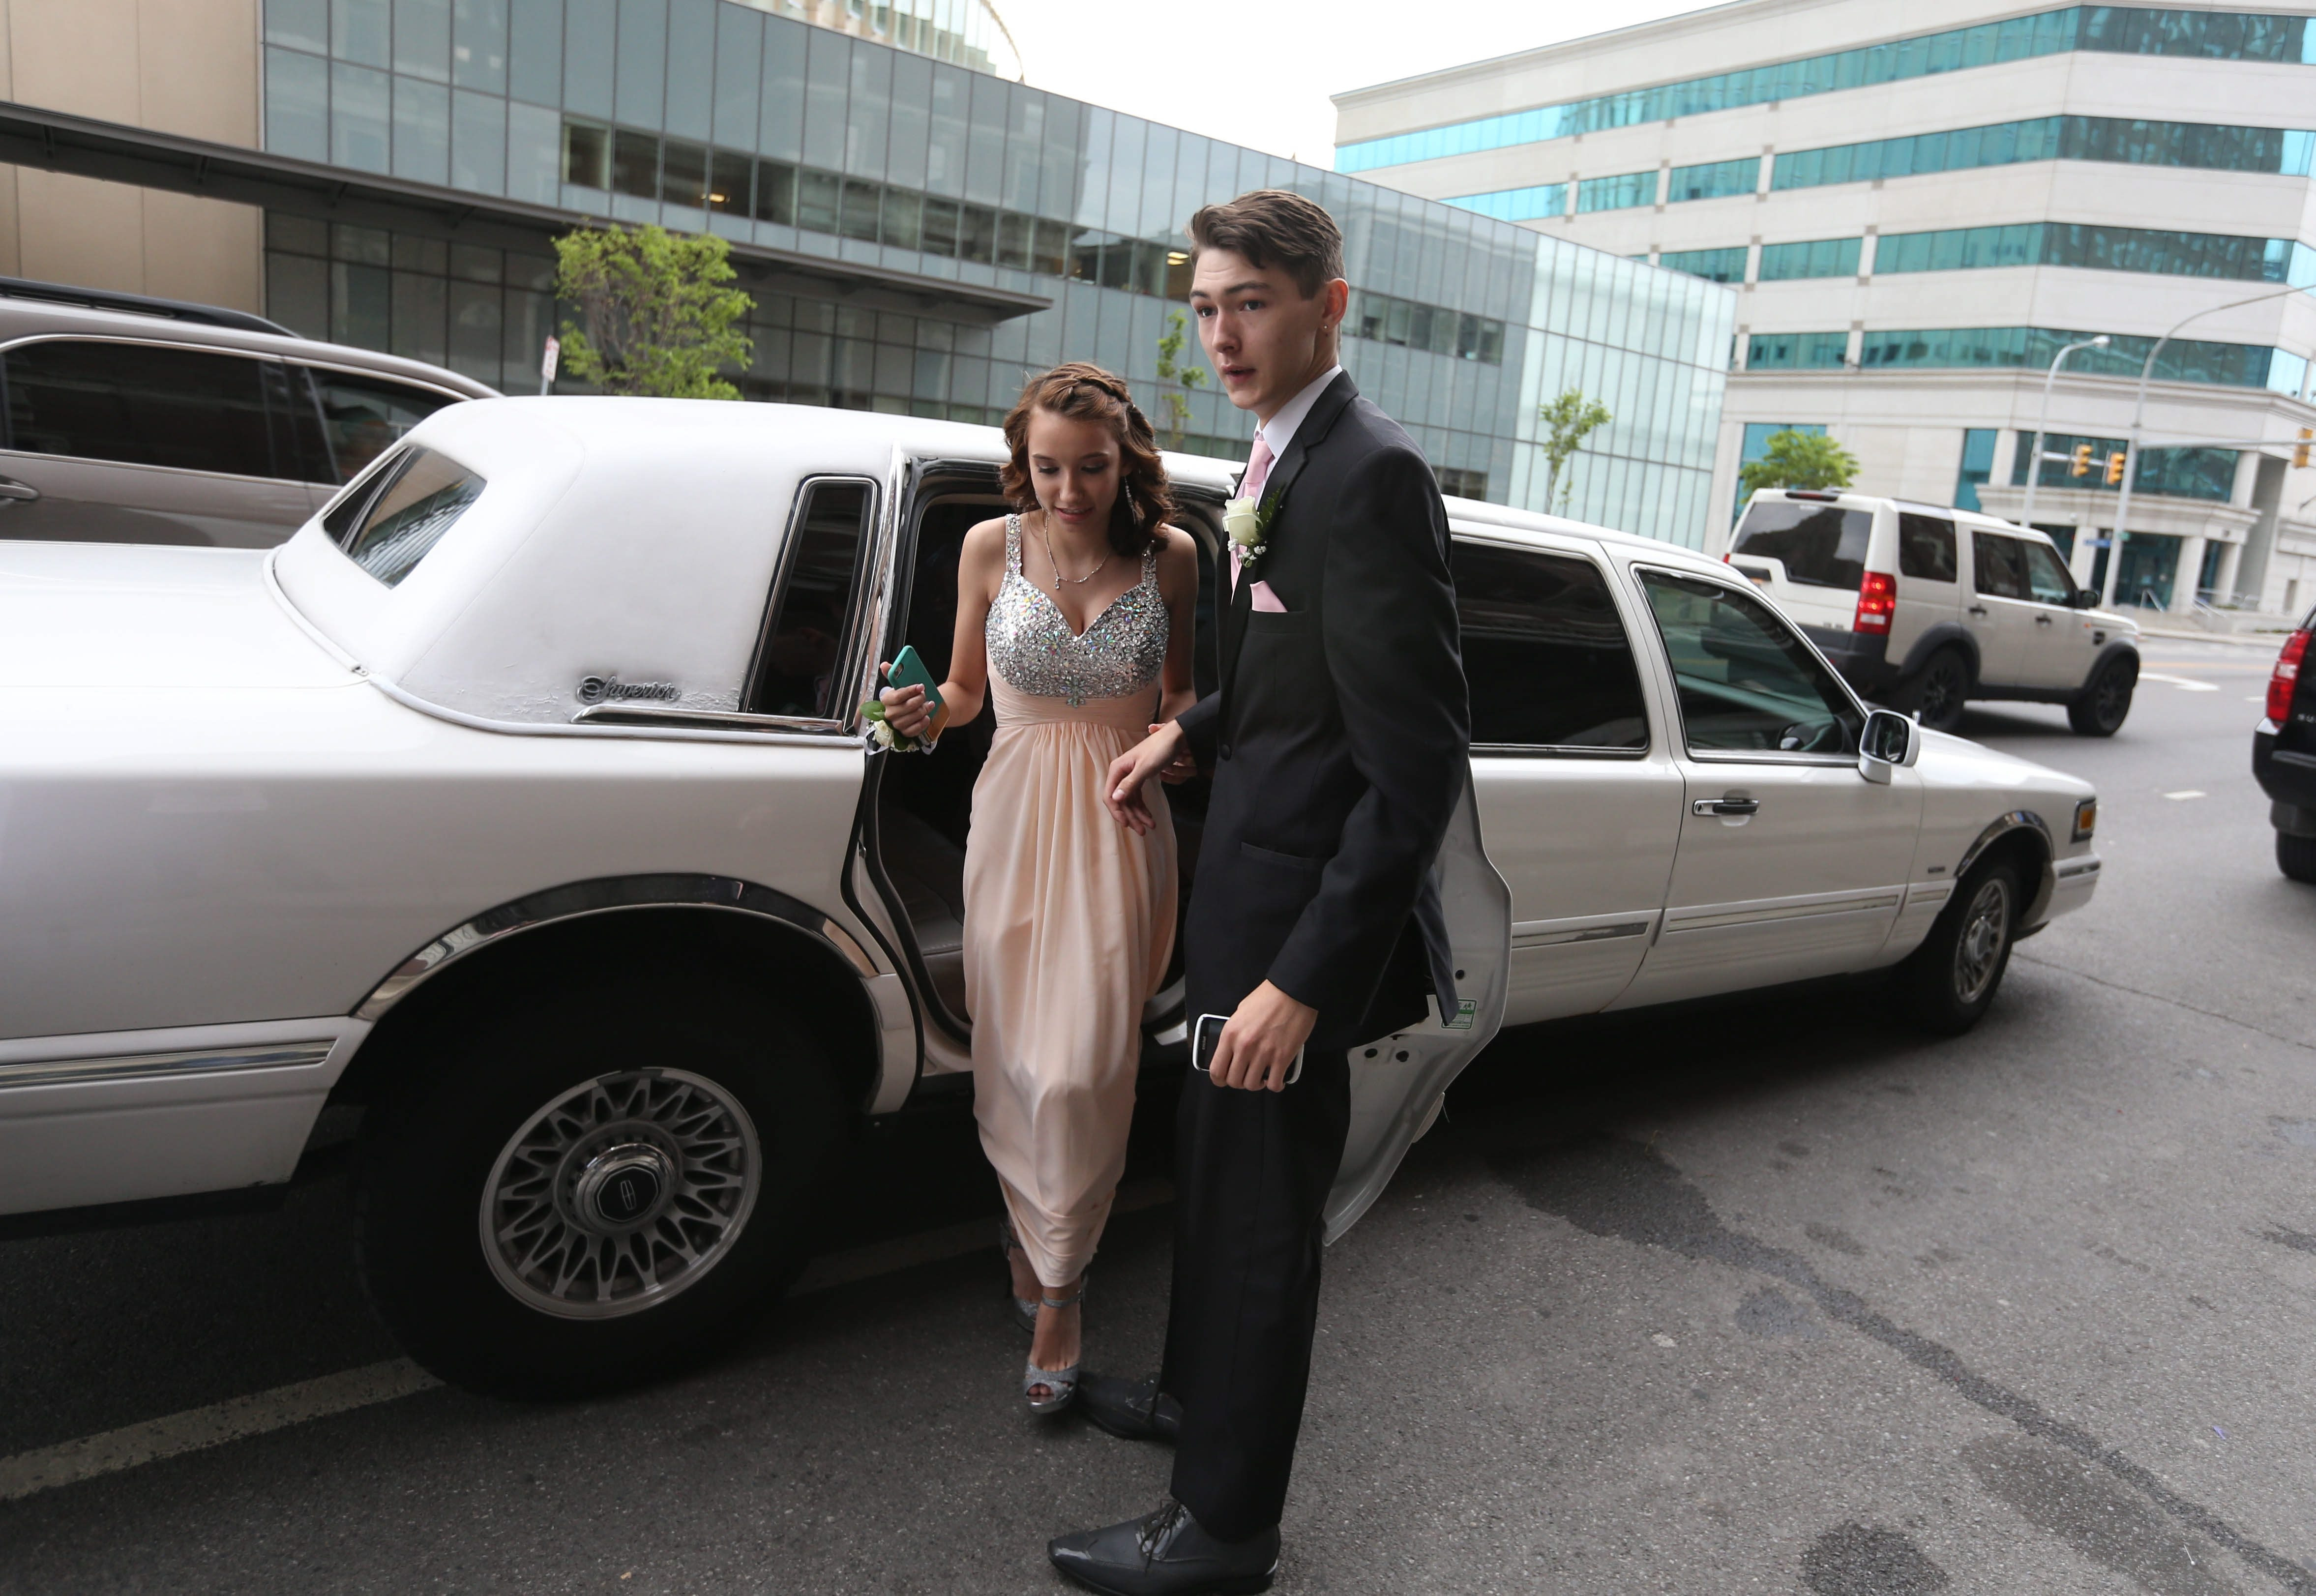 Sweet Home High School's senior prom took place at the Buffalo Statler, Thursday, June 11, 2015.  Limos pull up and drop off groups of prom-goers.  Jared Manhardt and his date Cristyn Schwab, get out of the car.  (Sharon Cantillon/Buffalo News)